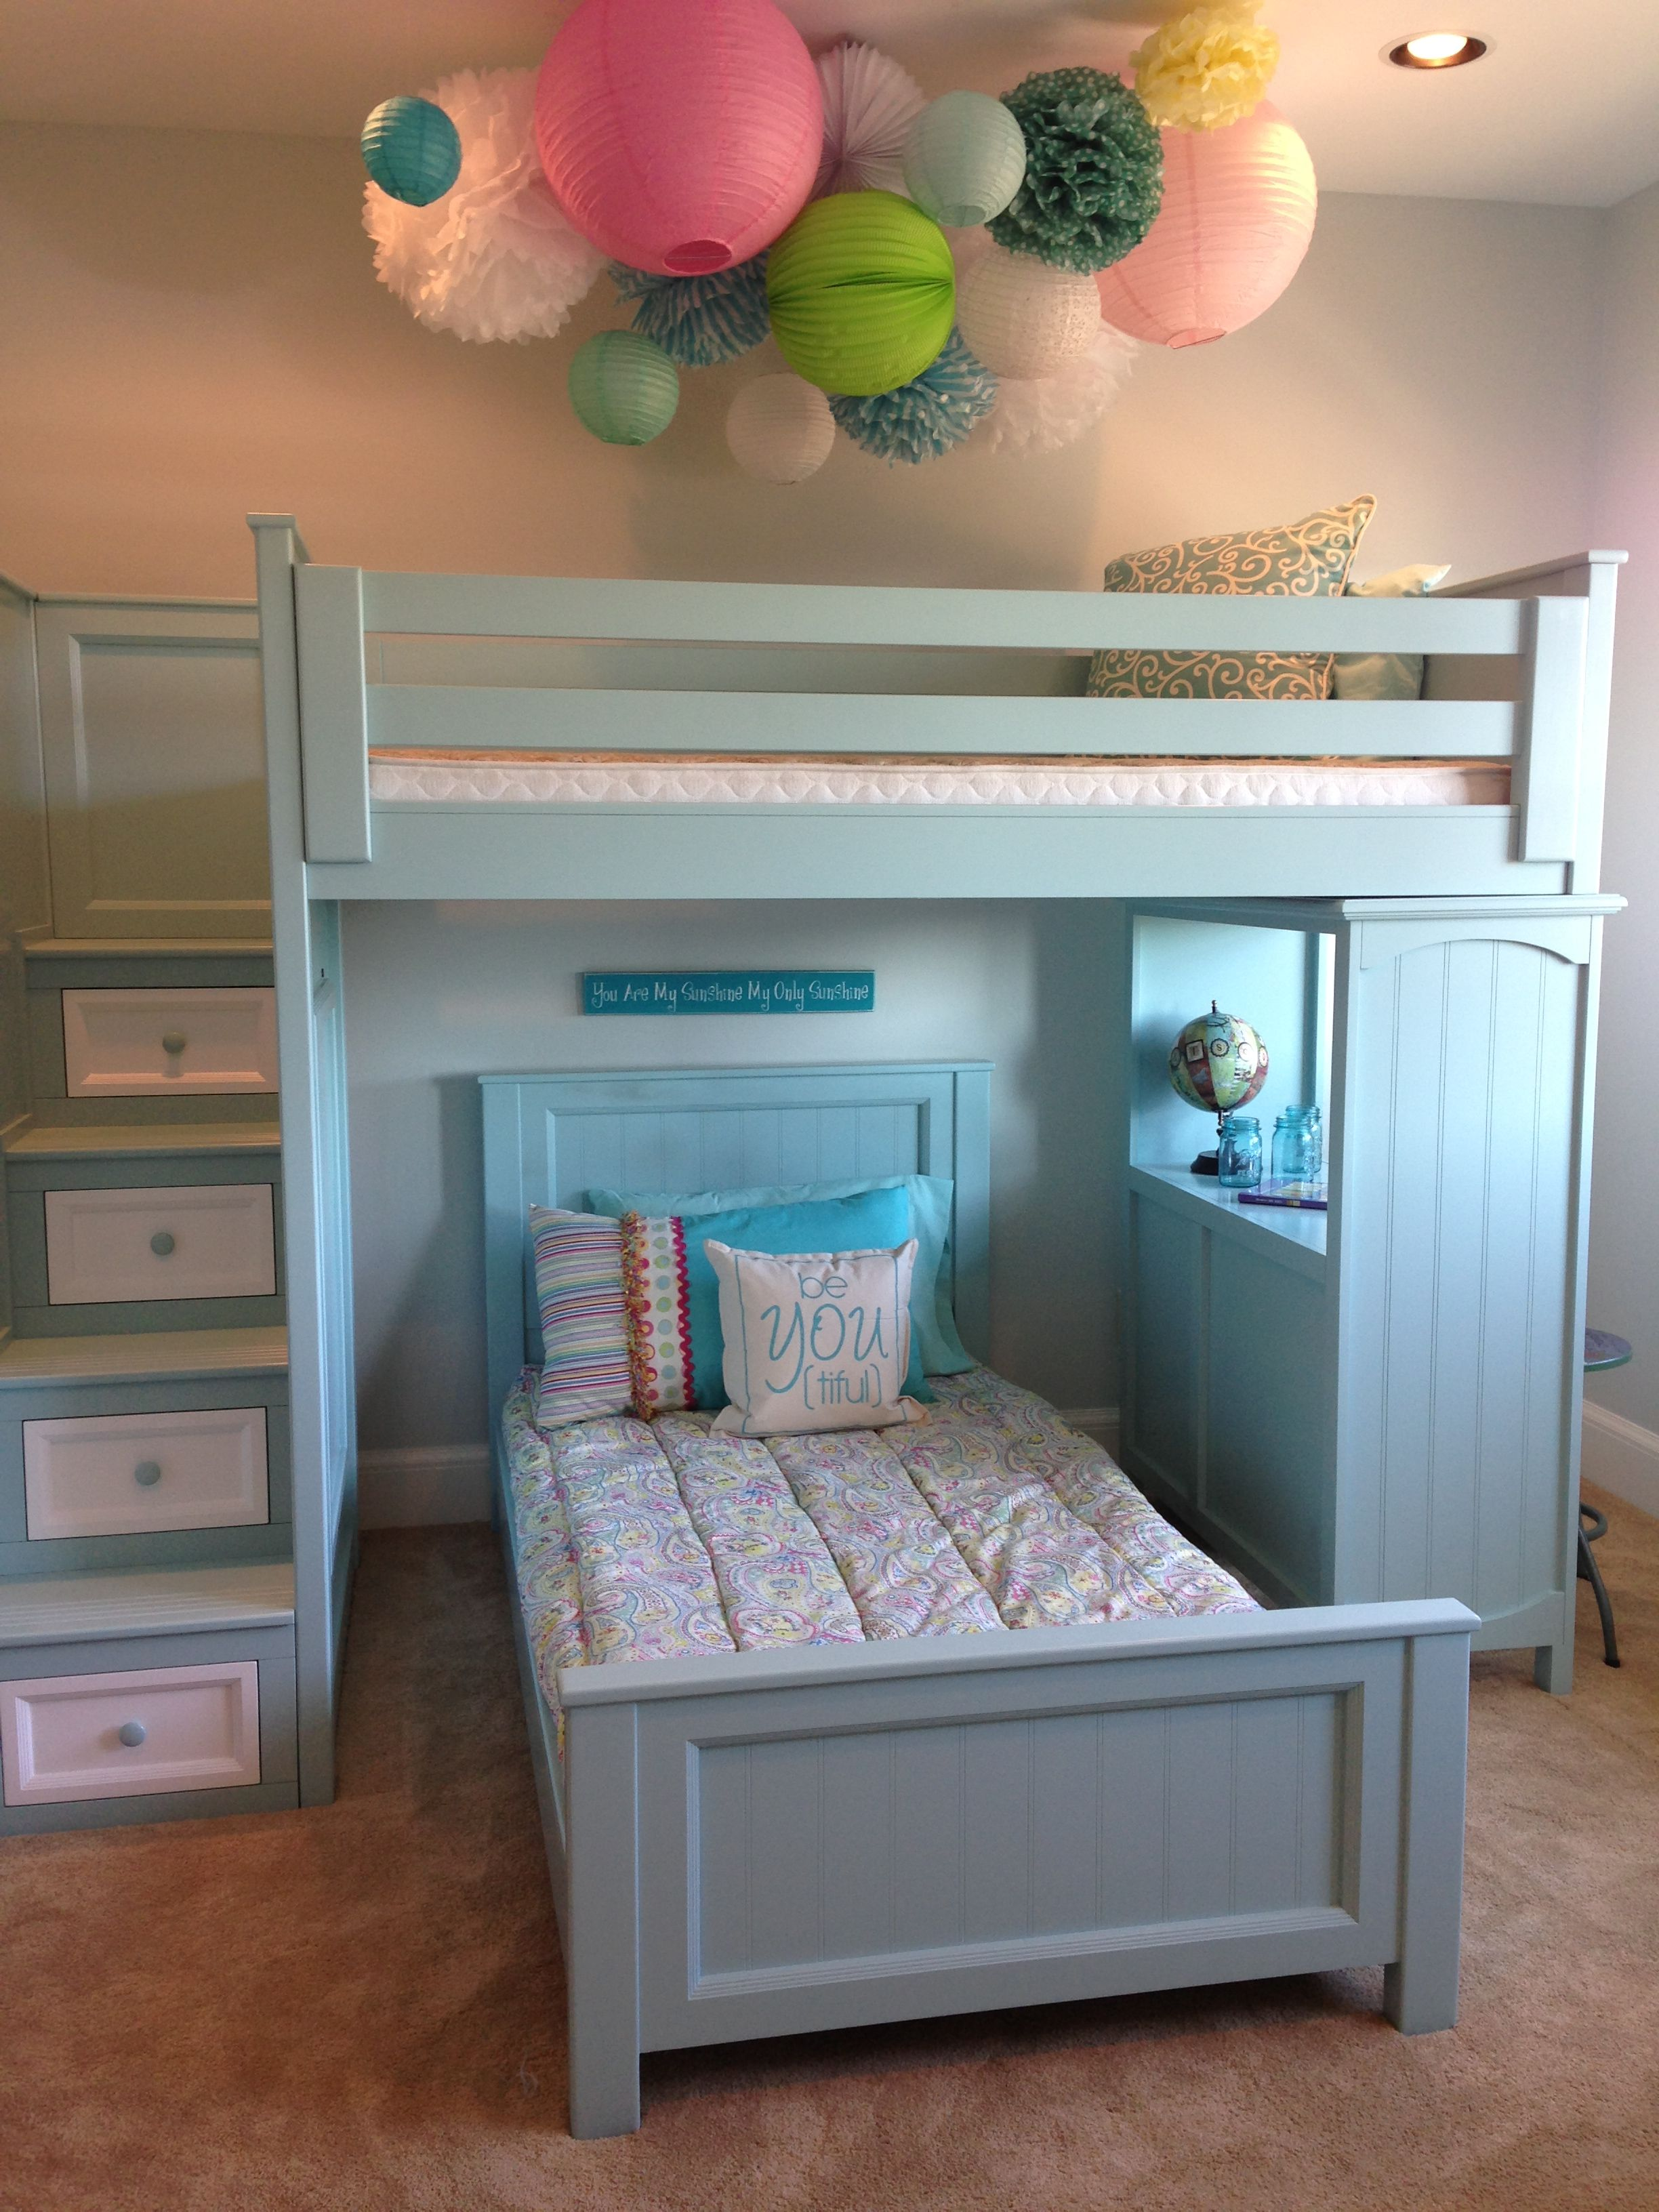 Bunk Bed Bedroom Ideas This Sydney Bunk Bed Would Be So Cute For A Girls Room